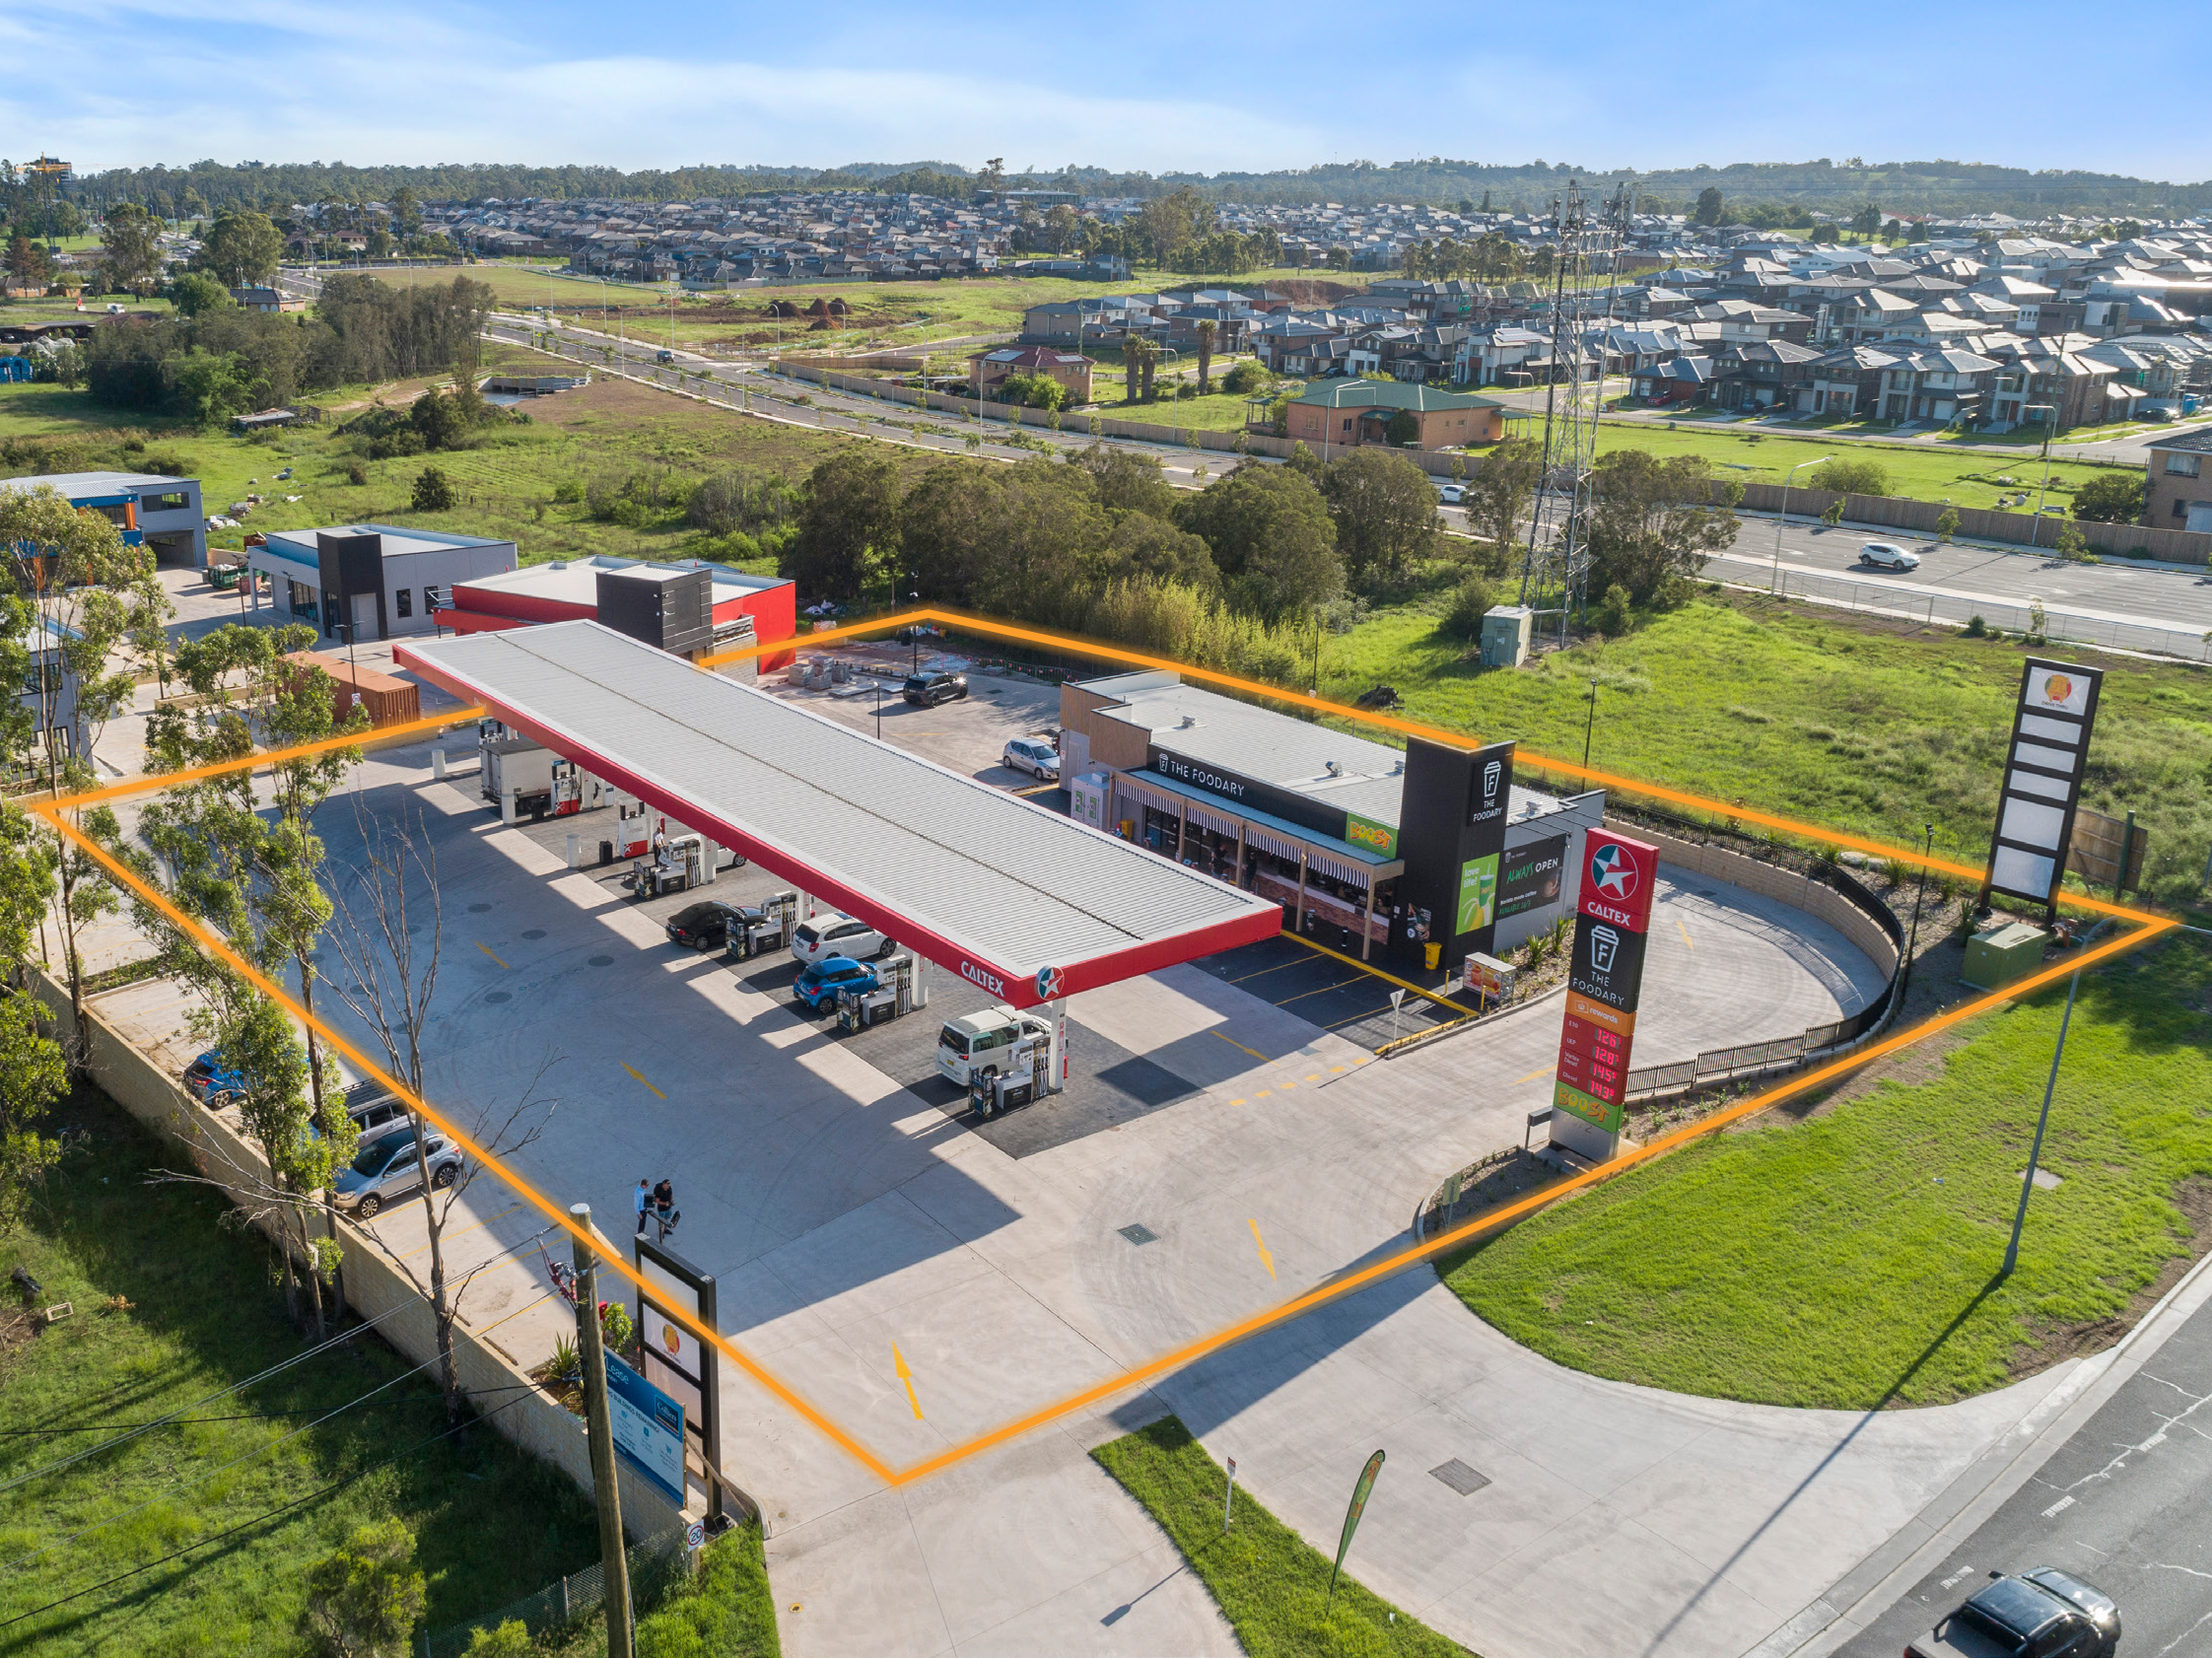 Sydney's Newest Service Station | Sydney's Fastest Growing Area